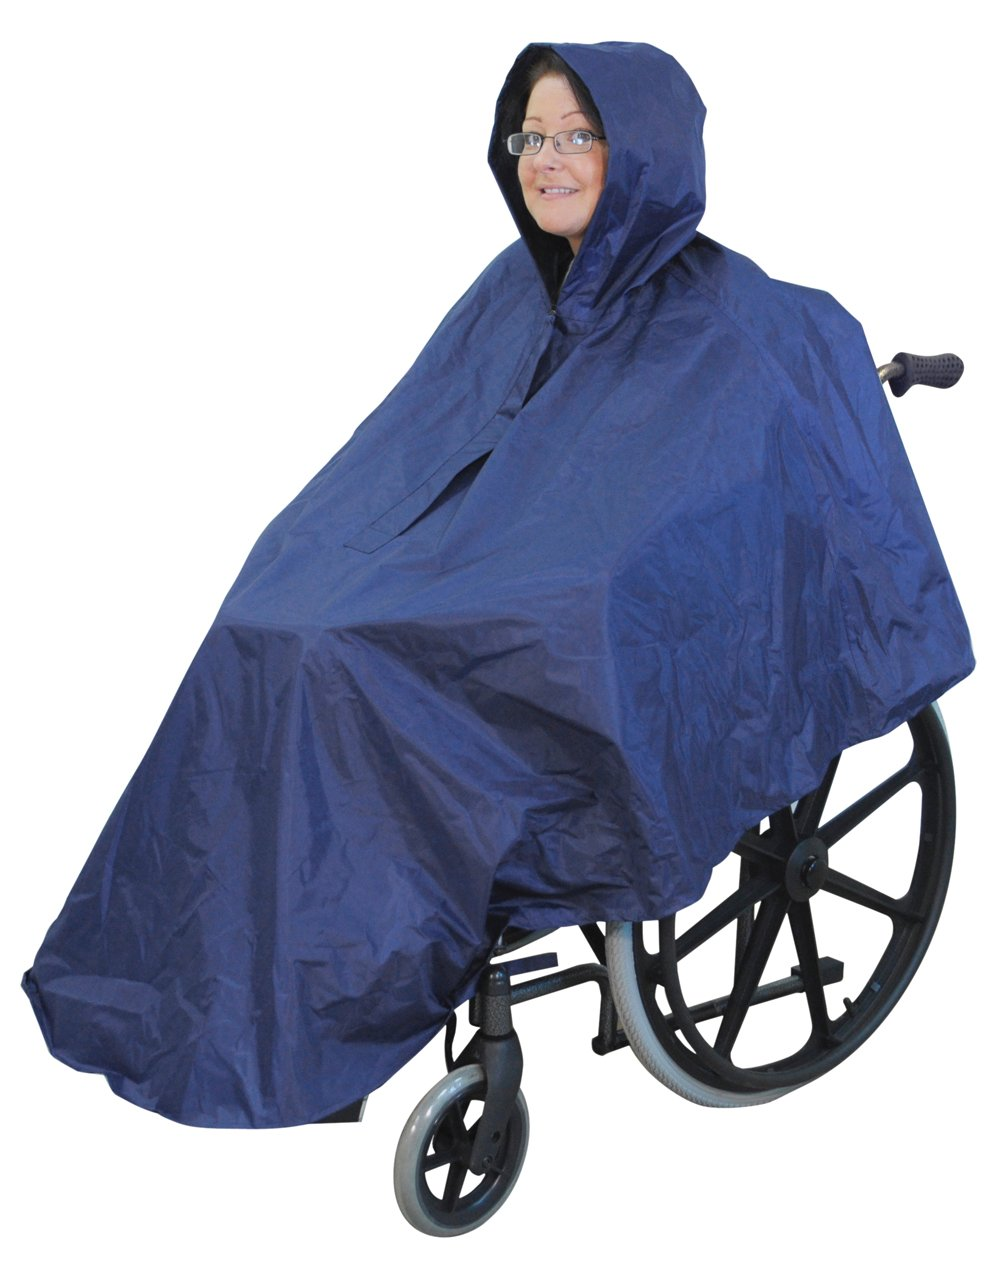 Aidapt Universal Wheelchair Poncho (Eligible for VAT relief in the UK) VA127C